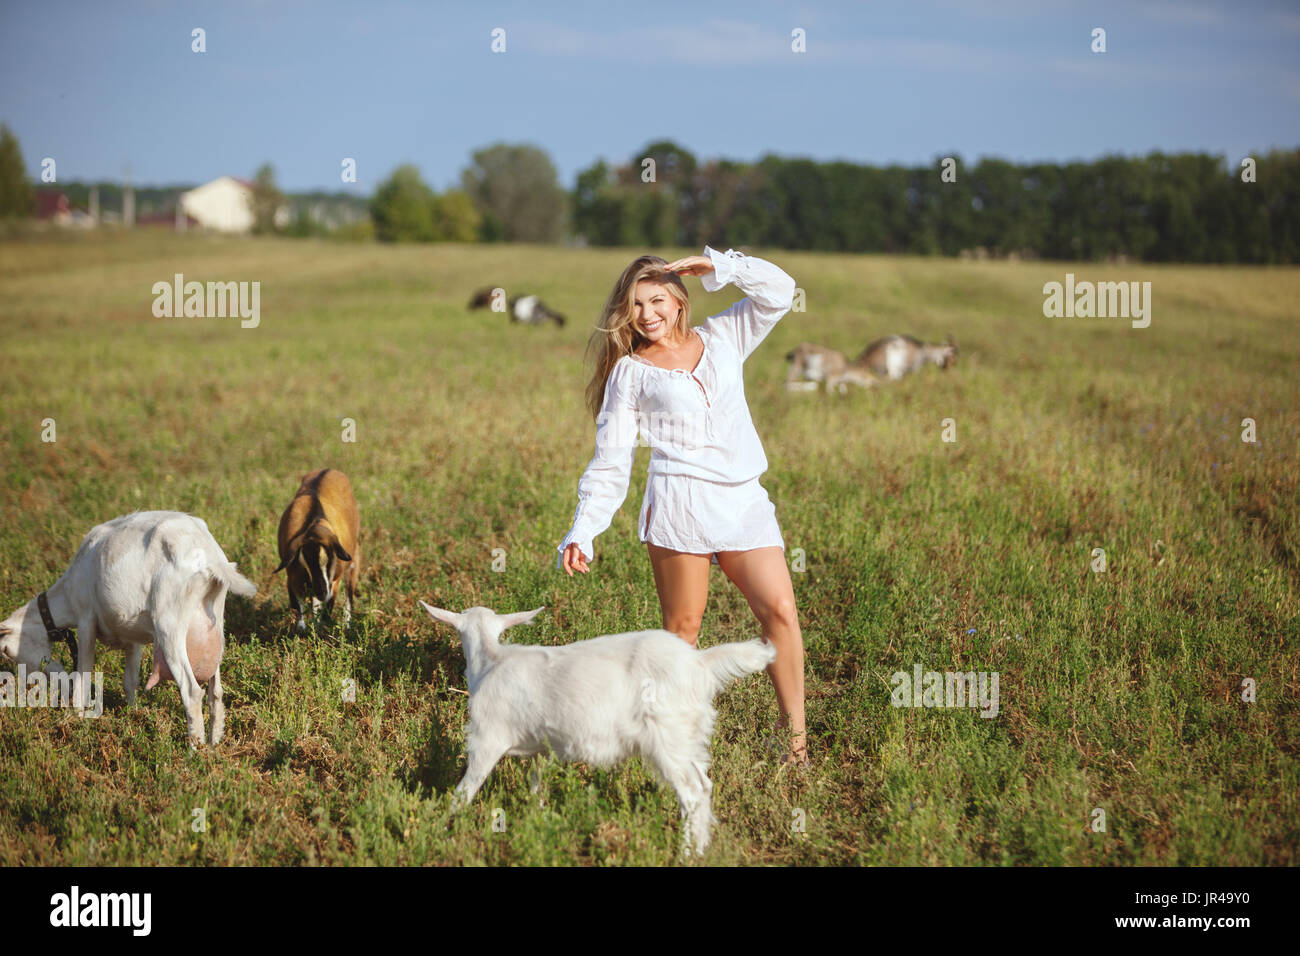 In the field to graze domestic goats, next to a happy woman and smiling. - Stock Image